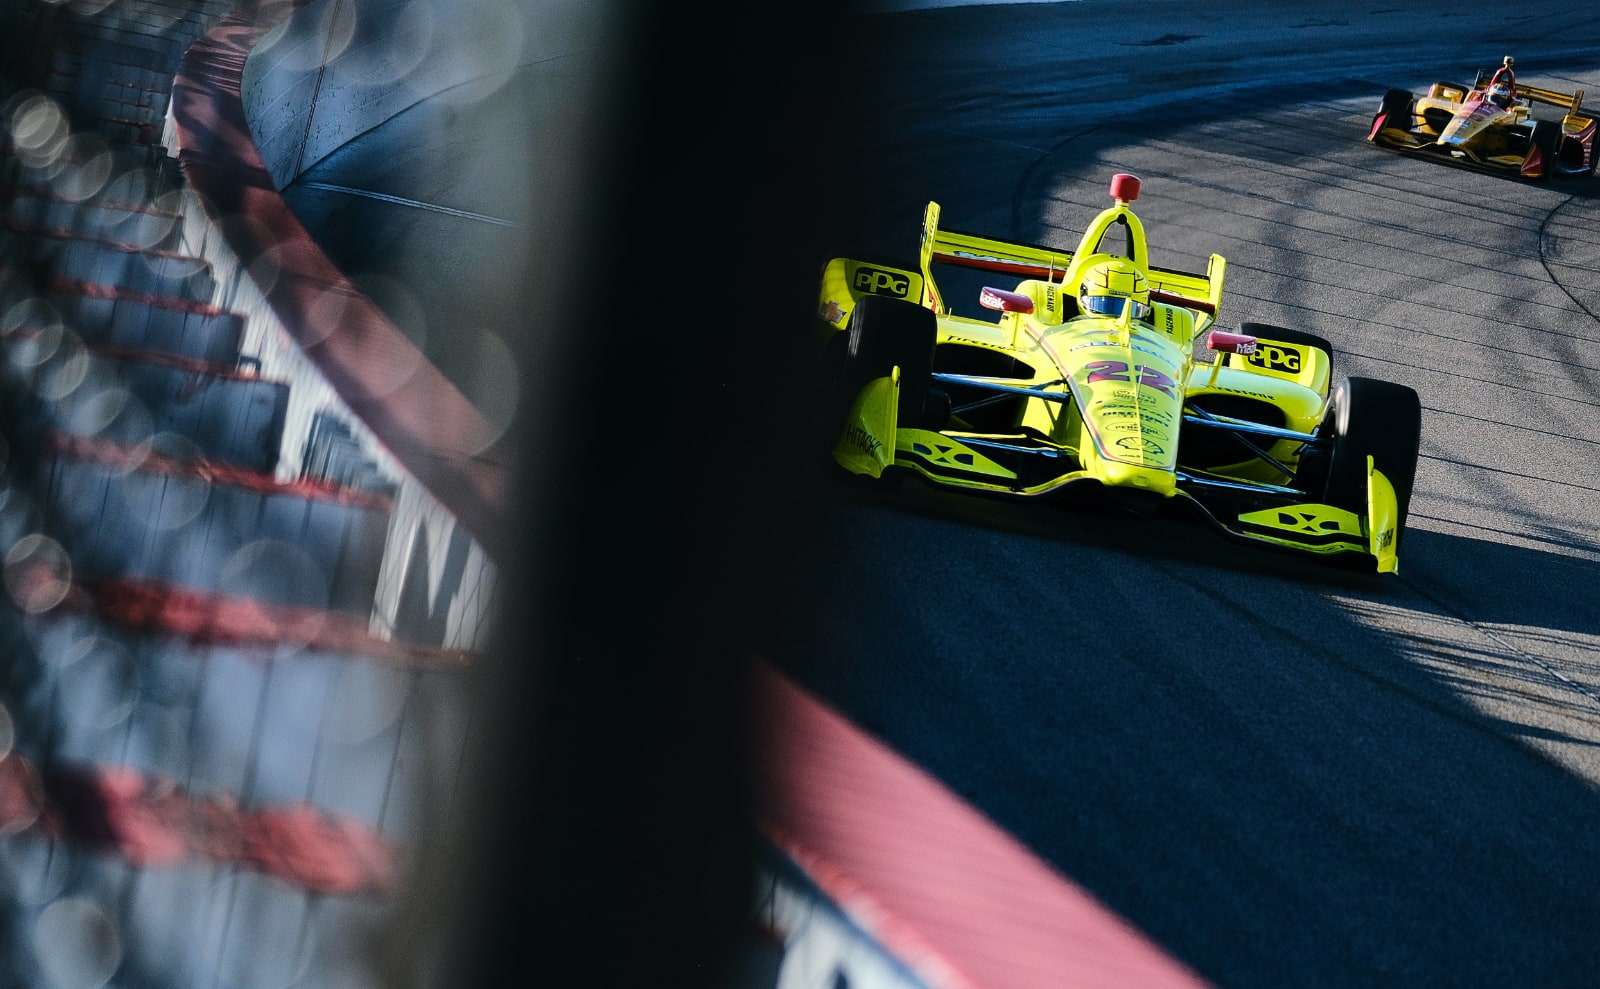 Simon Pagenaud laps Iowa ahead of Hunter-Reay in 2019 IndyCar practice